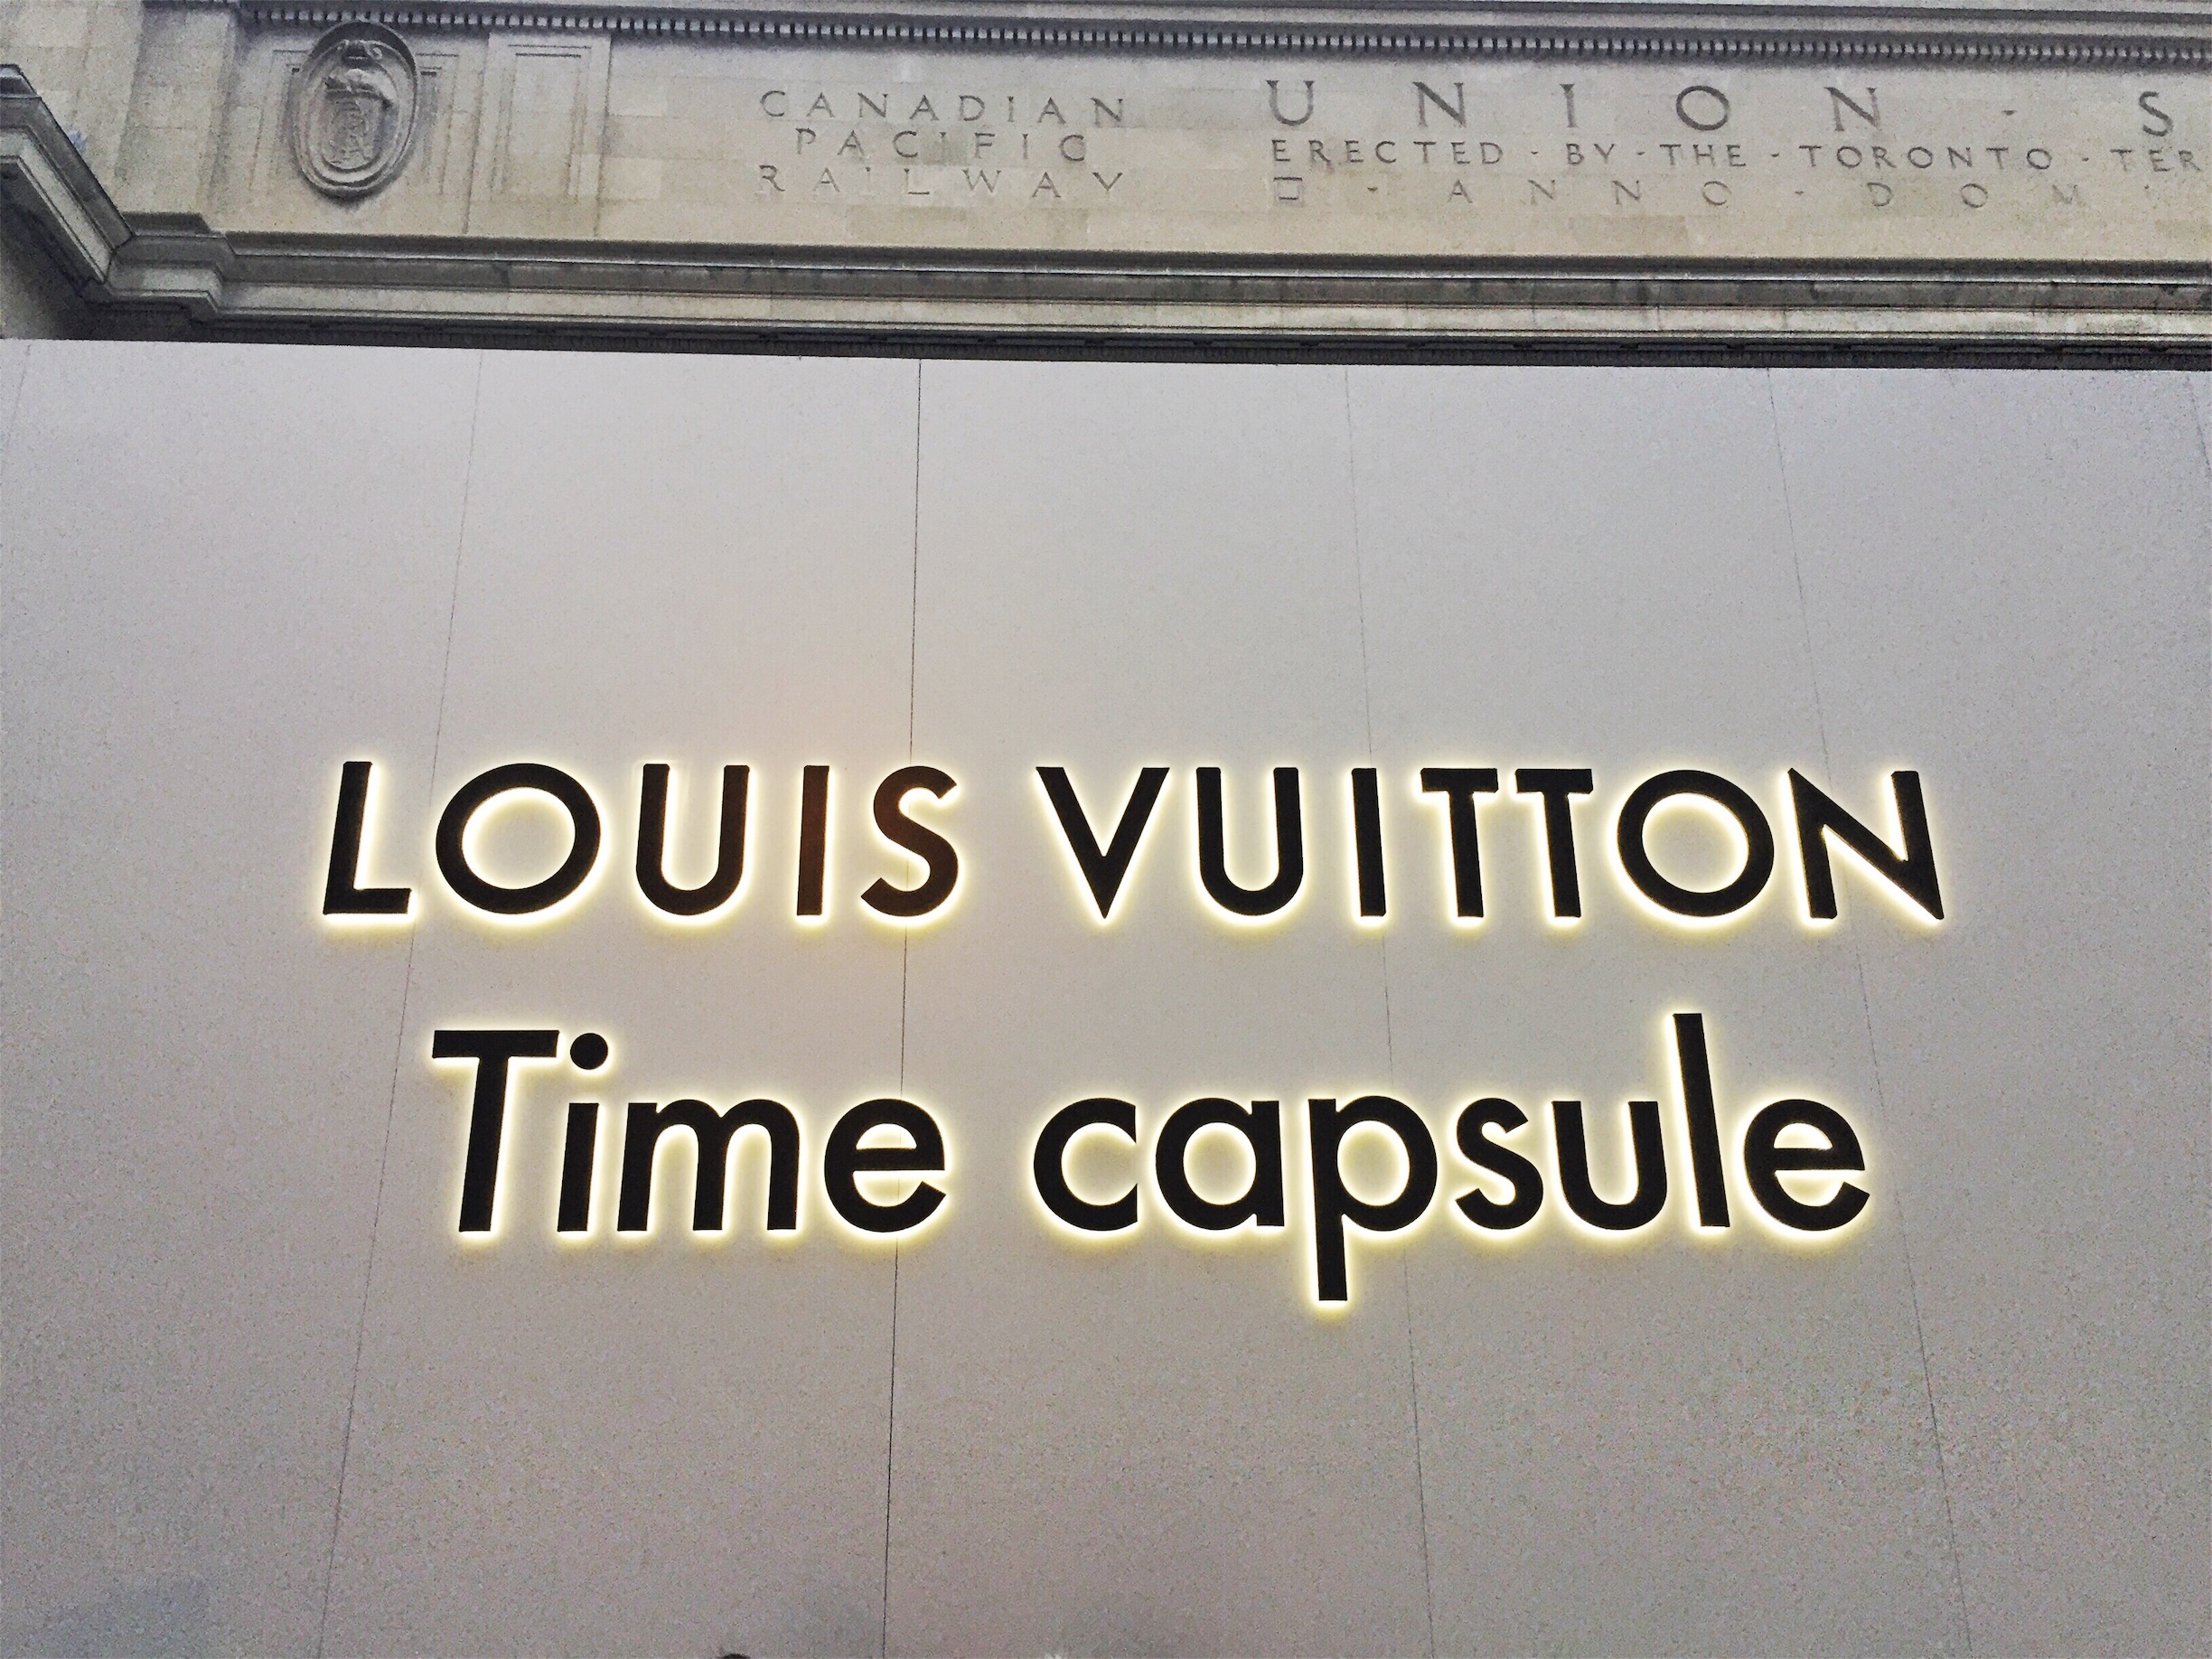 Louis Vuitton Time Capsule Collection in Toronto